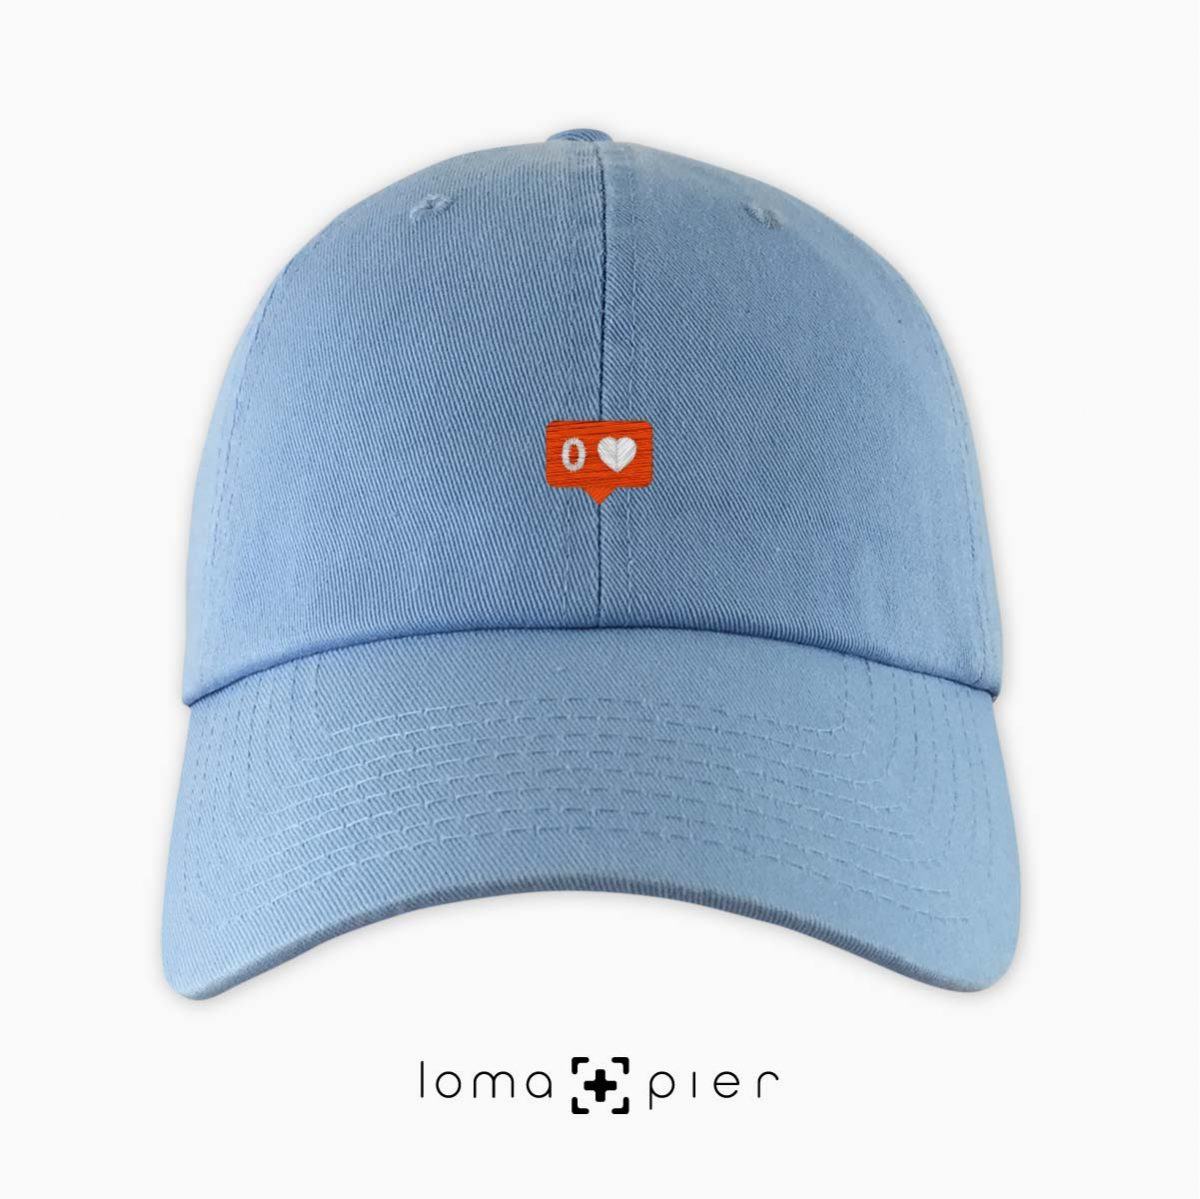 NO LOVE icon dad hat in light blue by loma+pier hat store